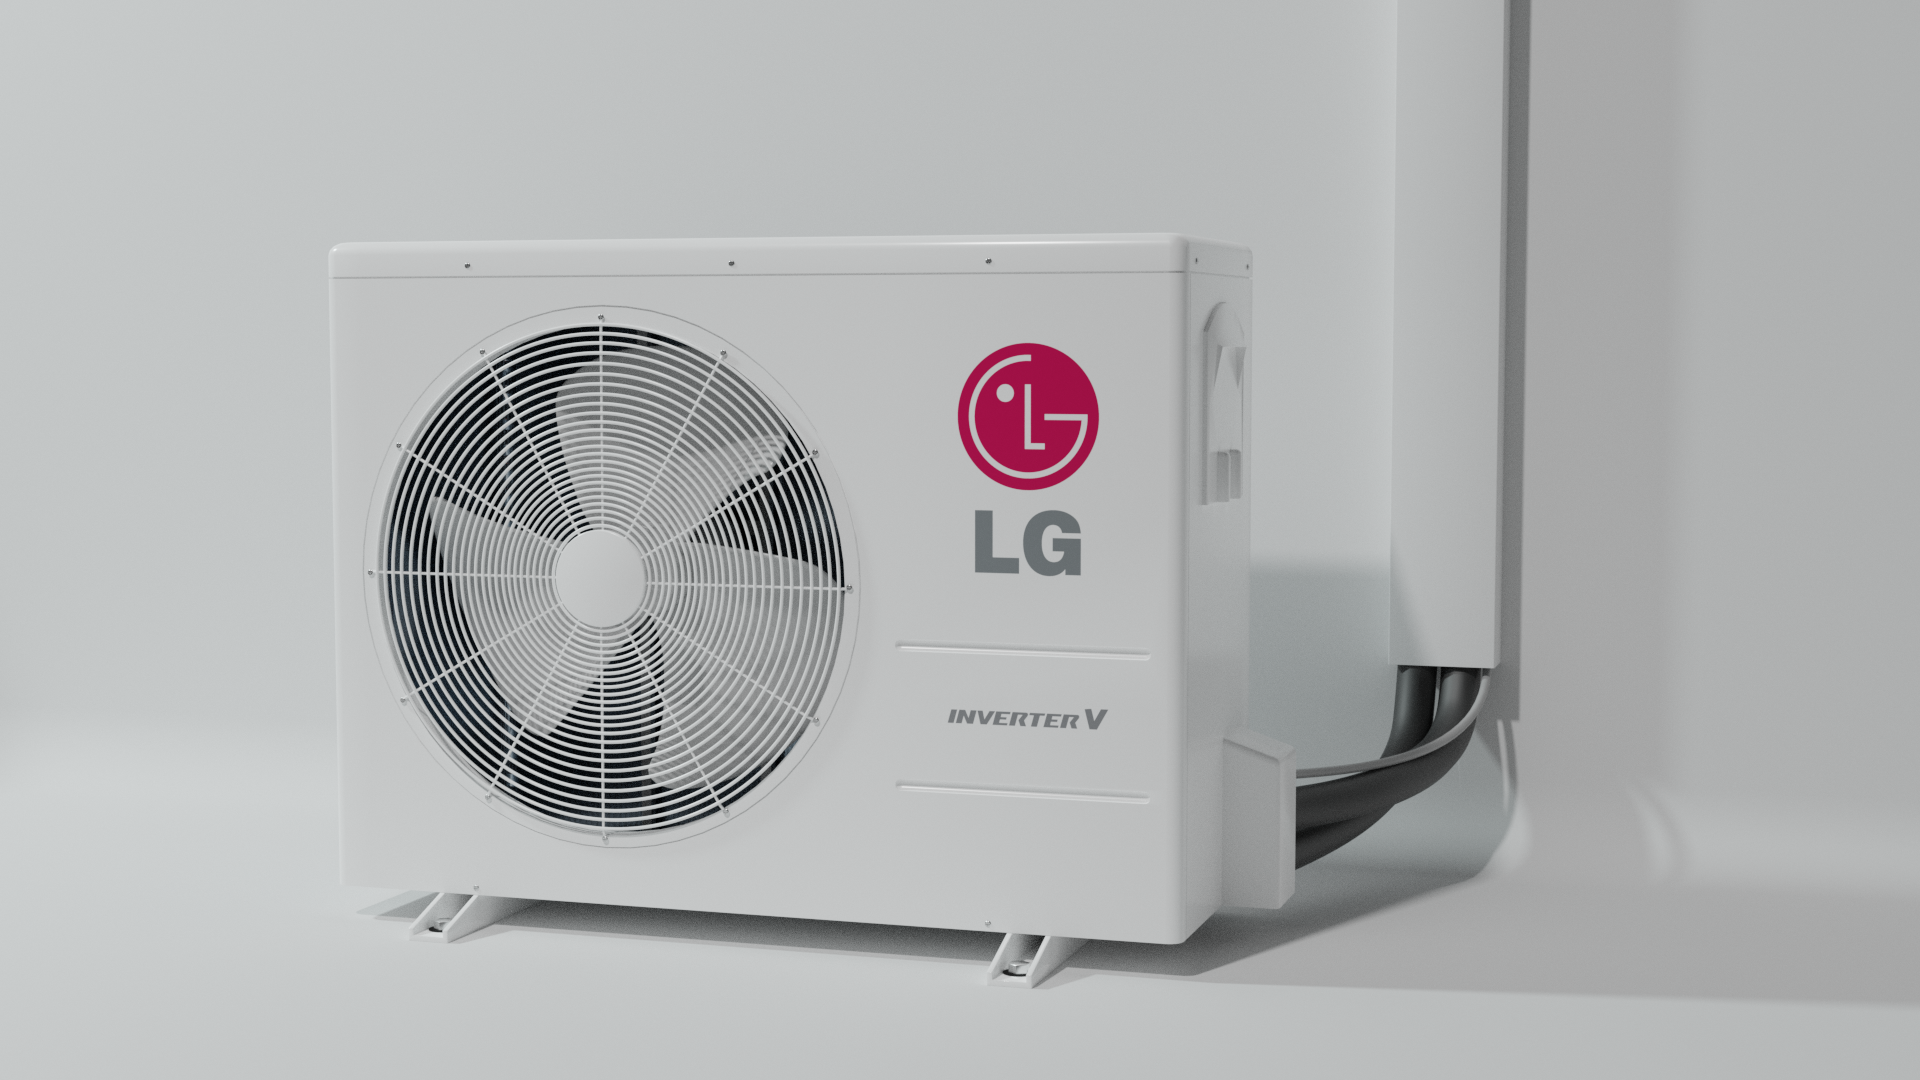 LG Multi Split Inverter Outdoor Unit preview image 1